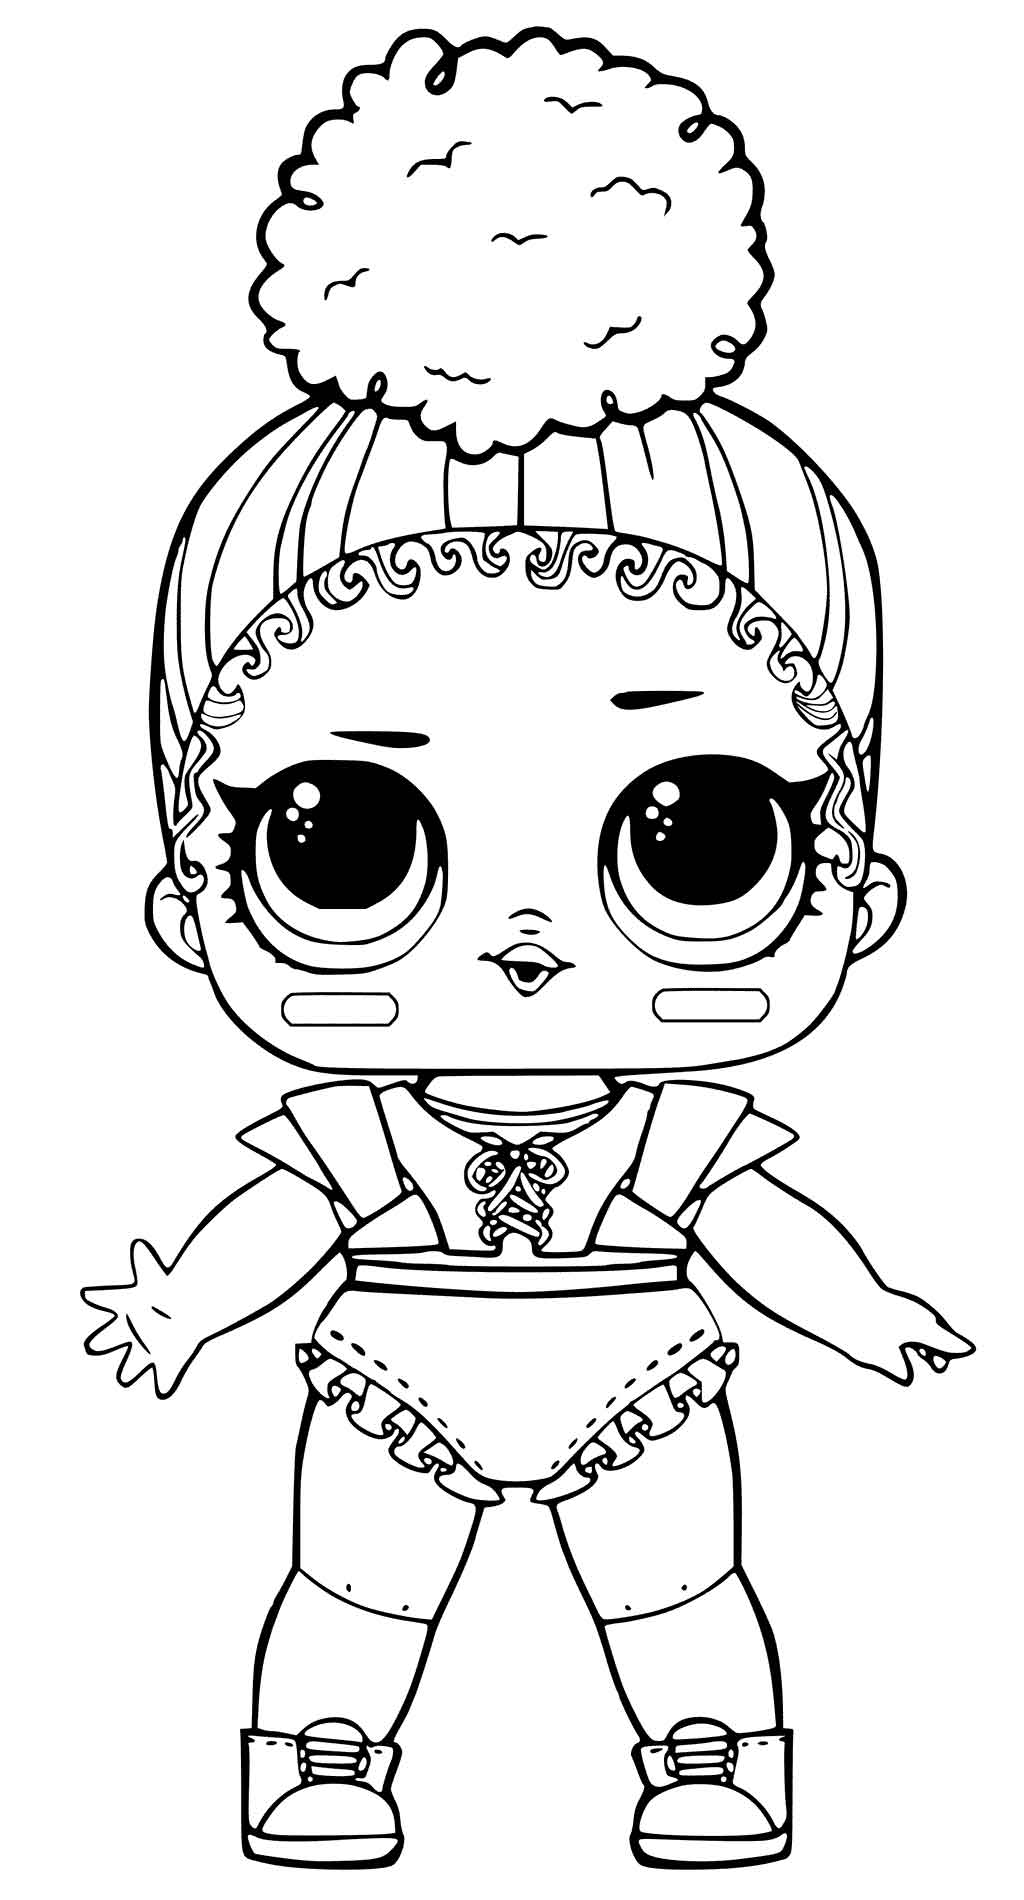 coloring template printable lol colouring pages lol surprise doll coloring pages ice sk8er free pages coloring printable template colouring lol